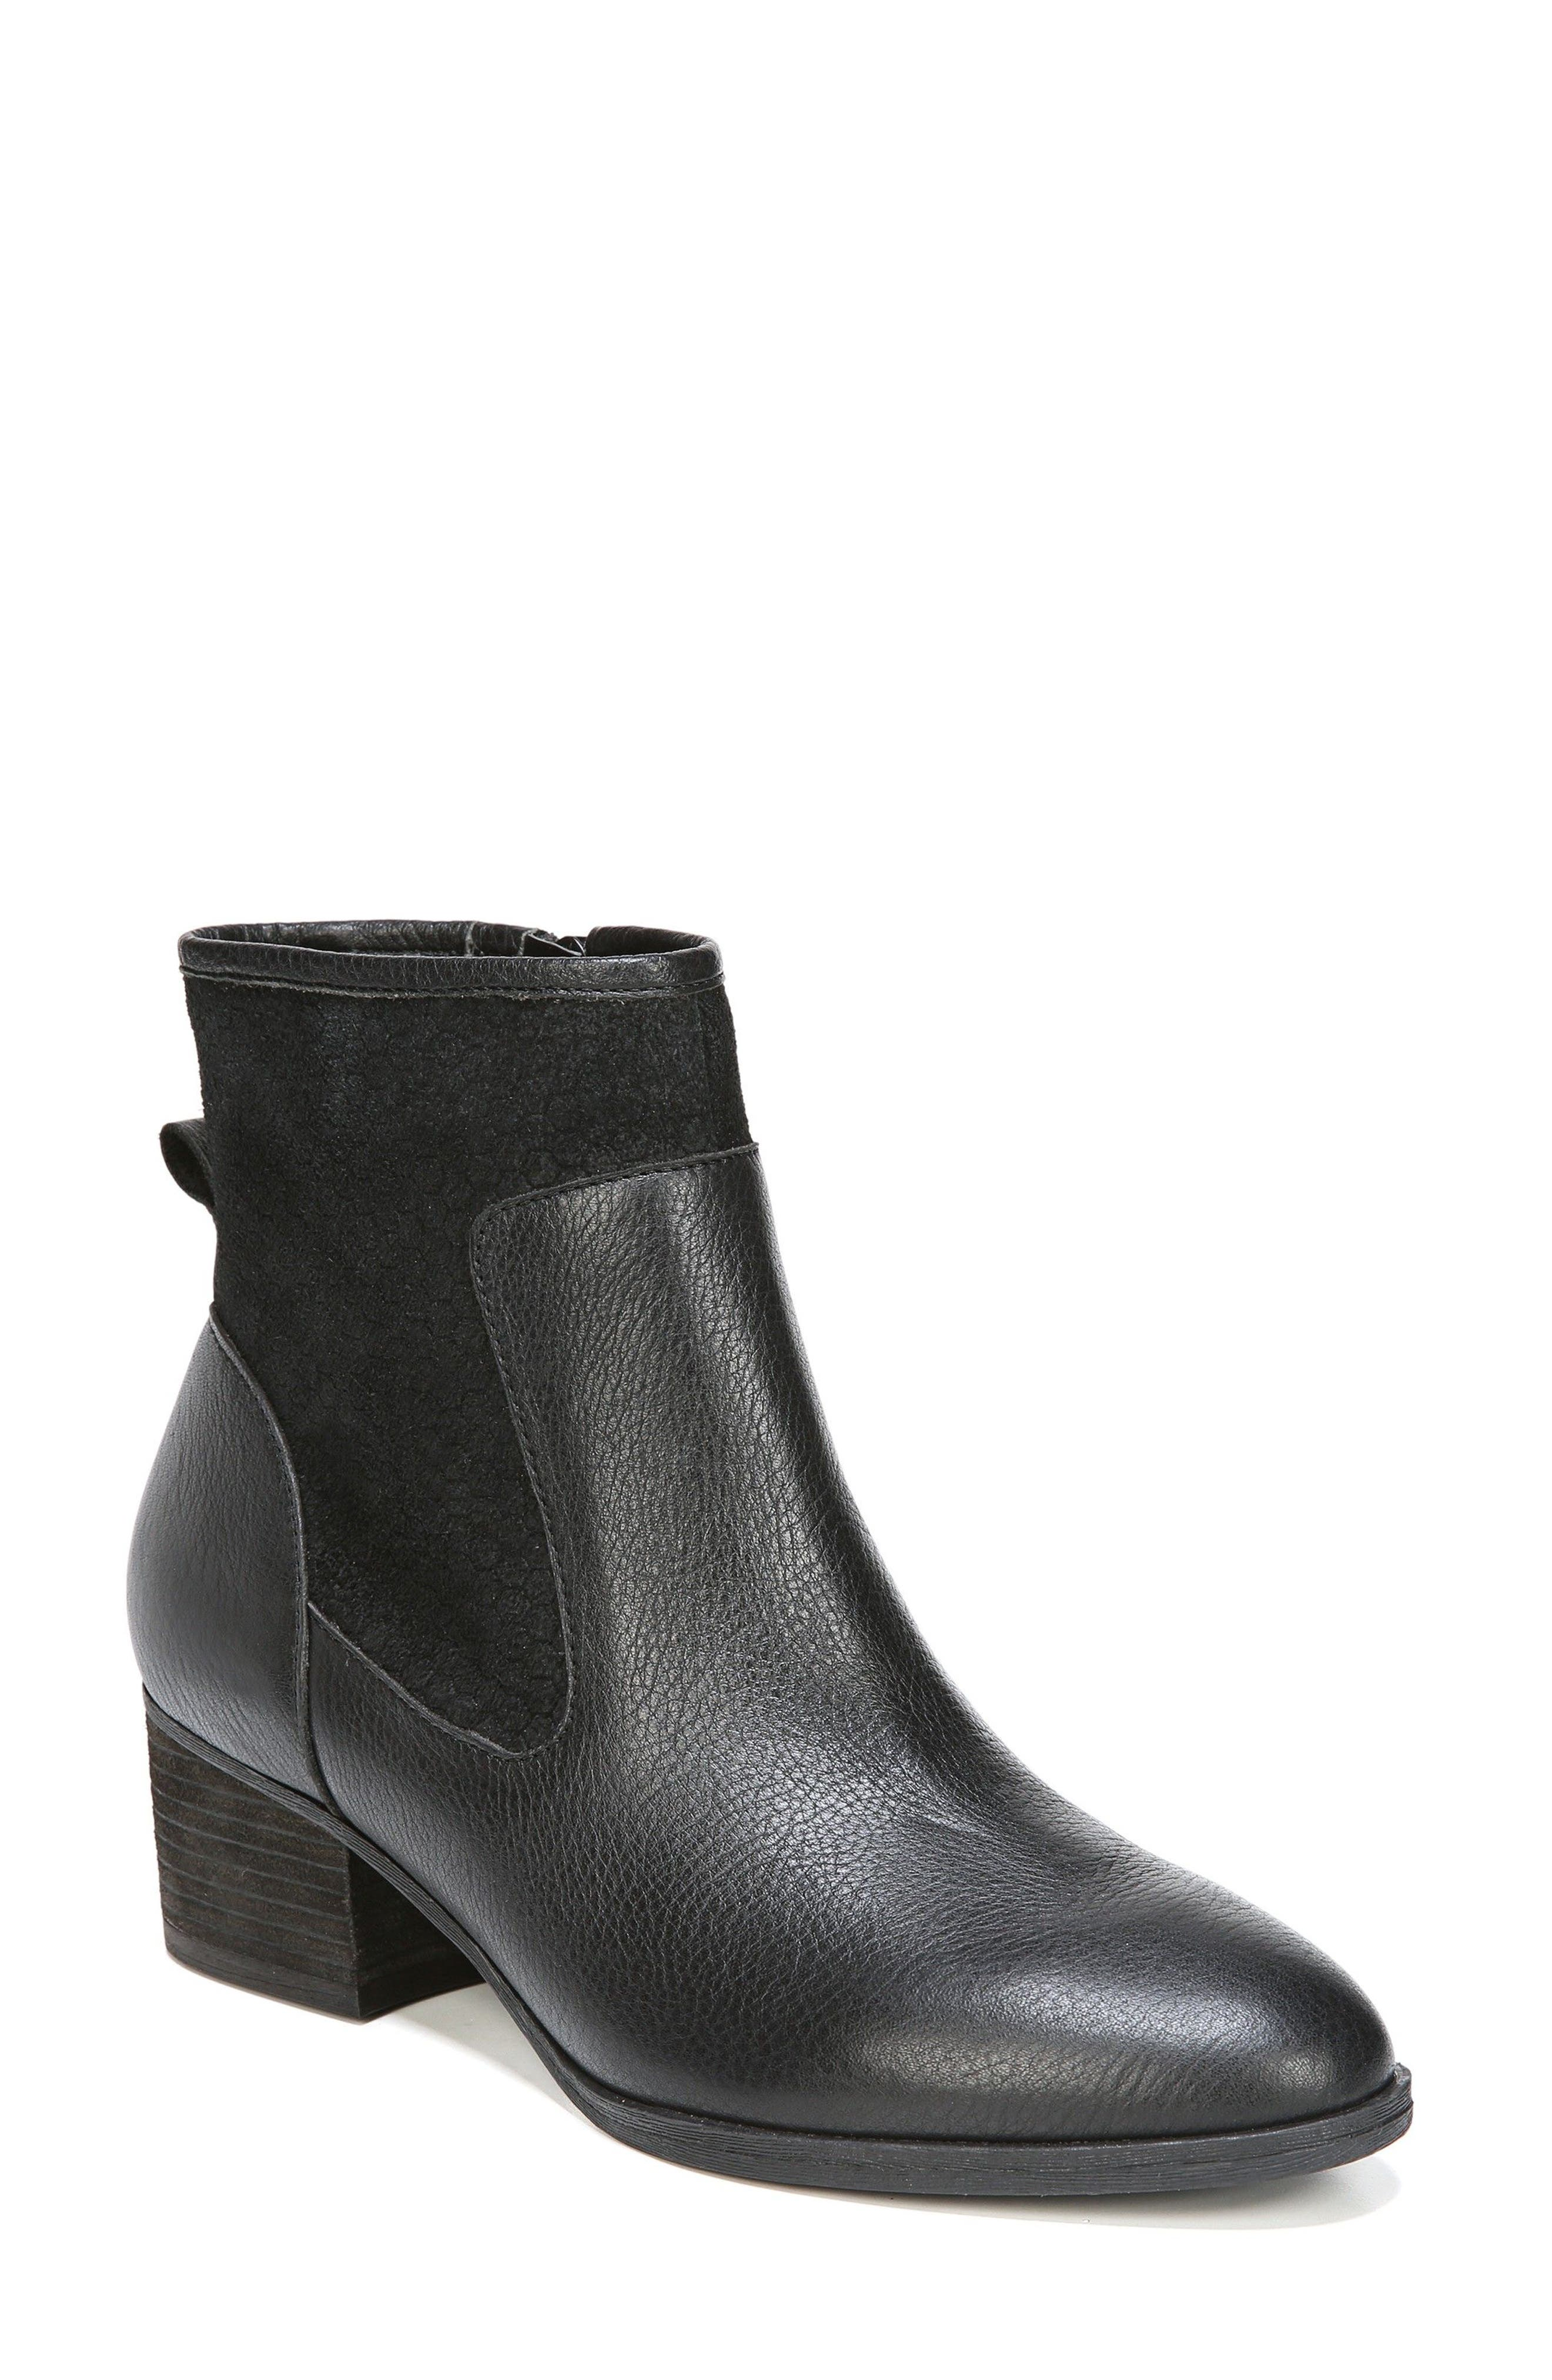 Tawny Bootie,                         Main,                         color, Black Leather